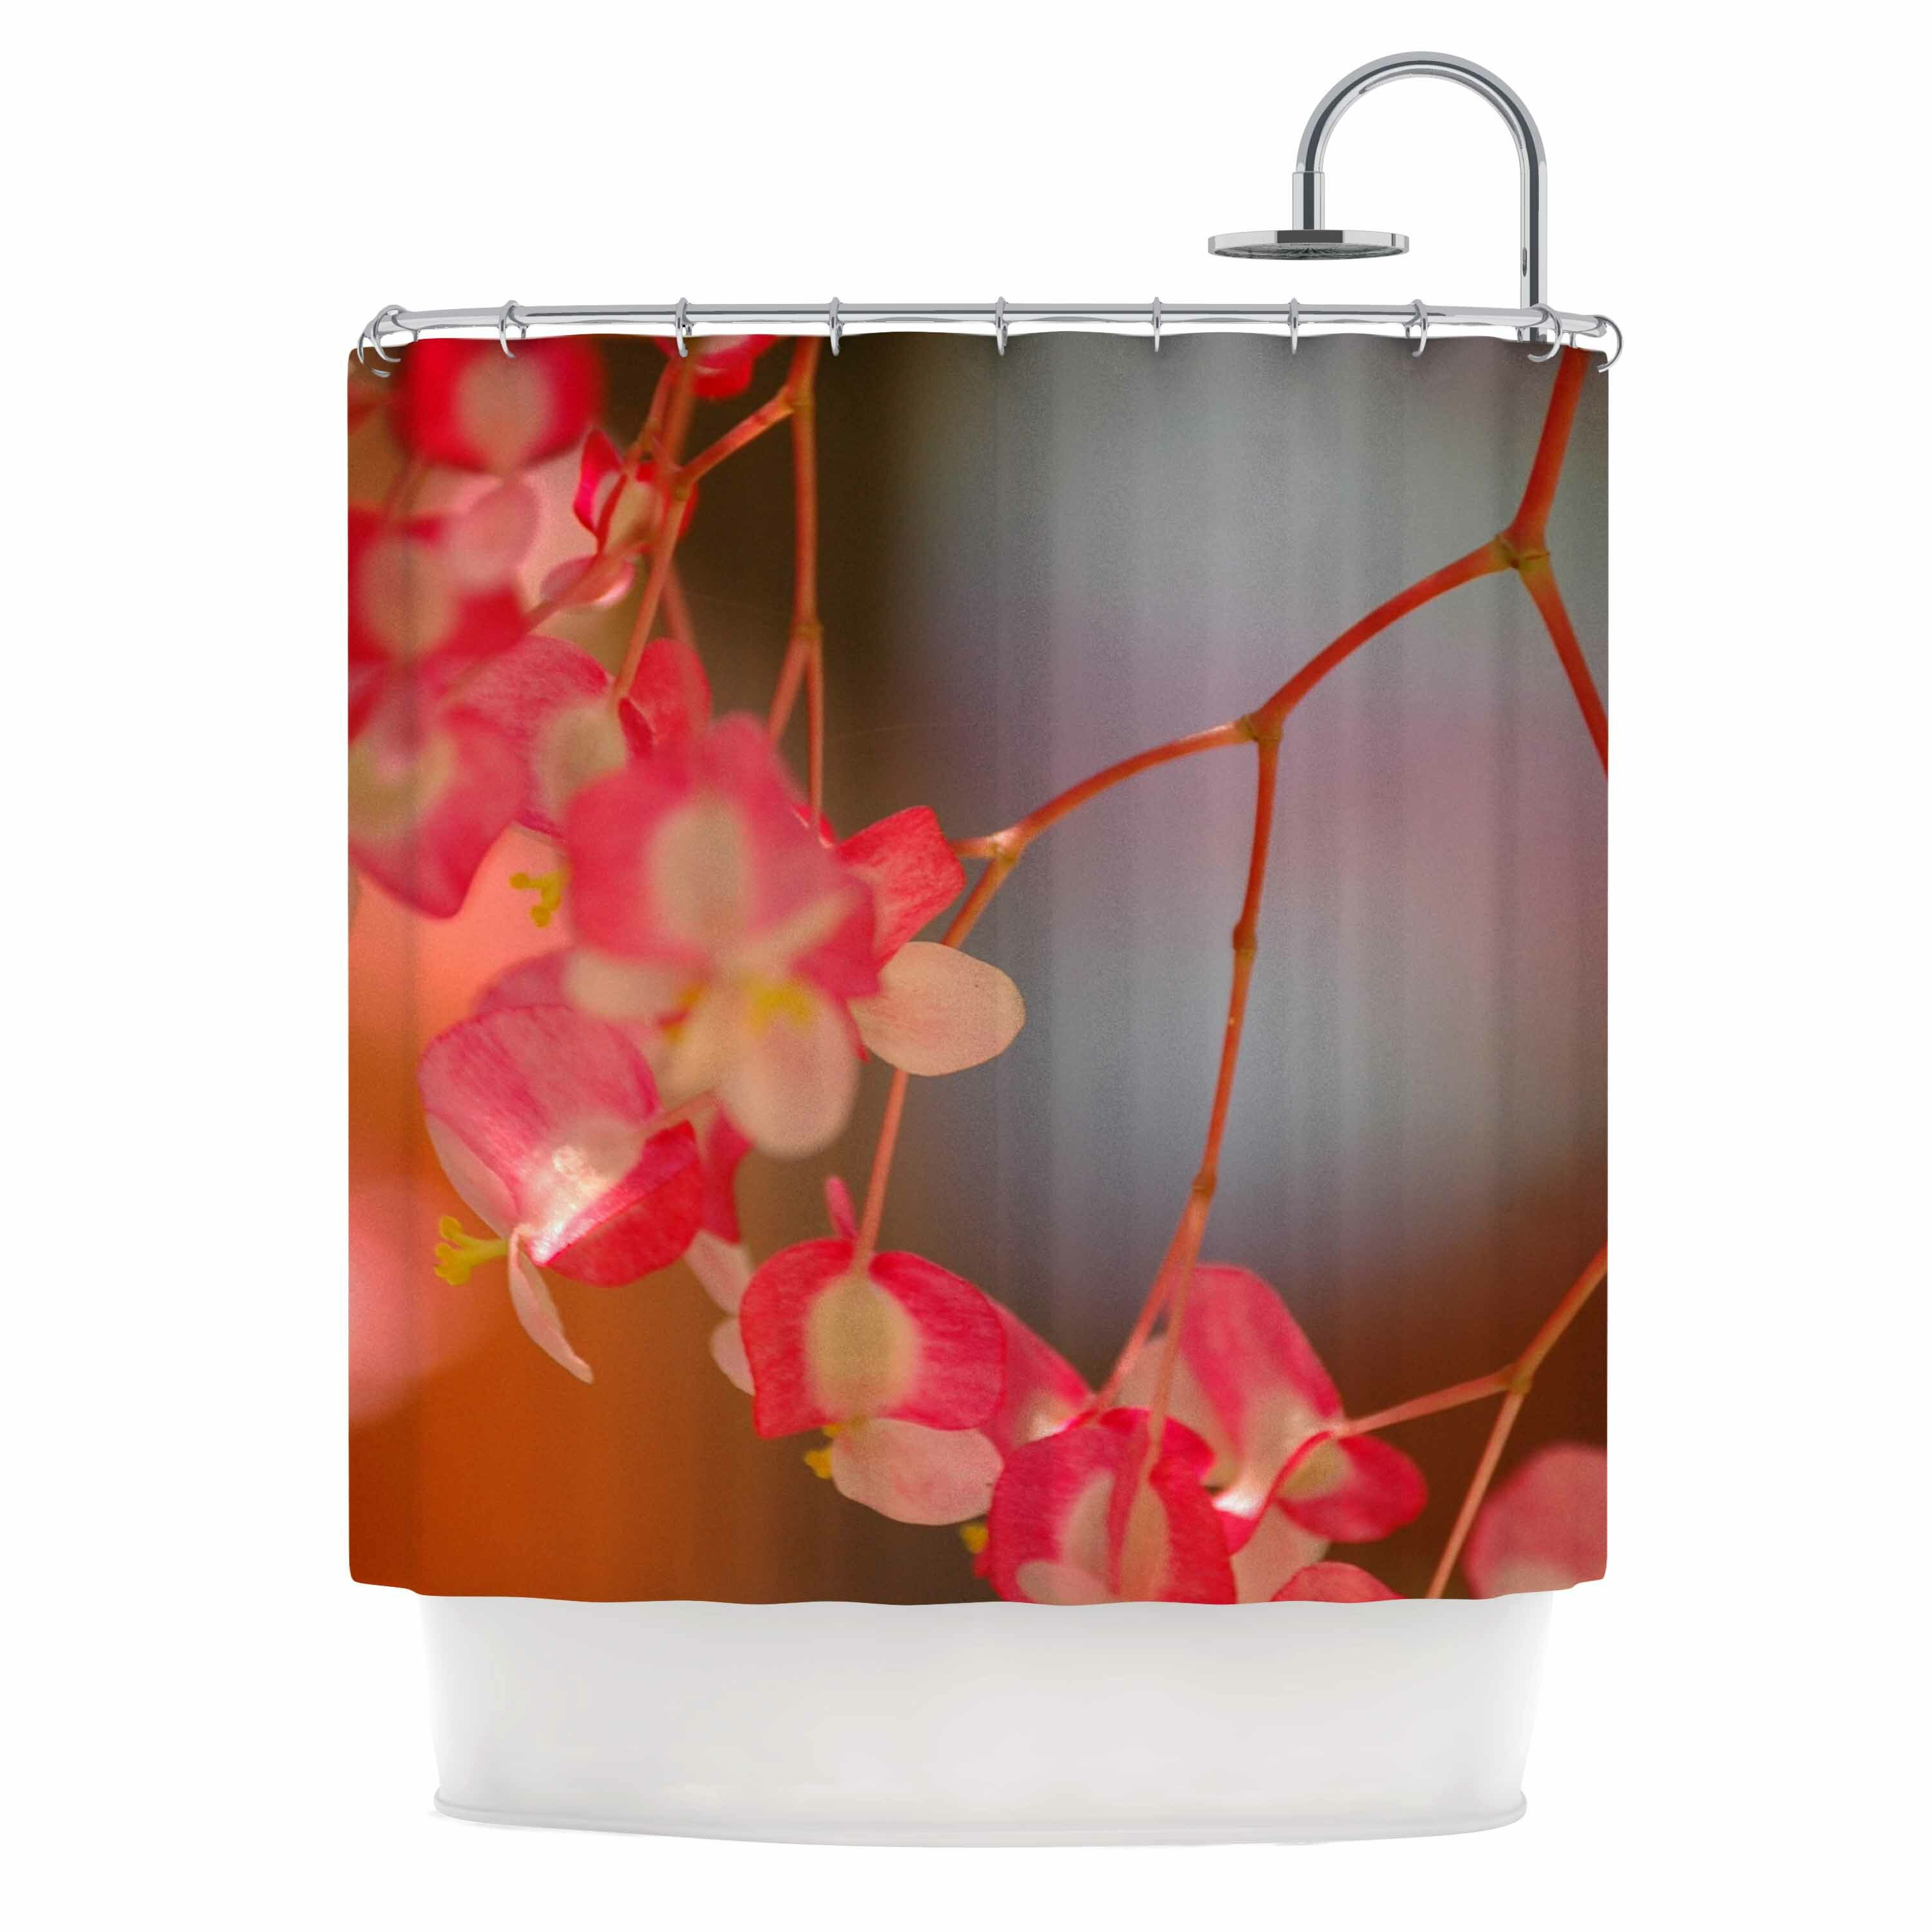 East Urban Home Hanging Flowers Shower Curtain